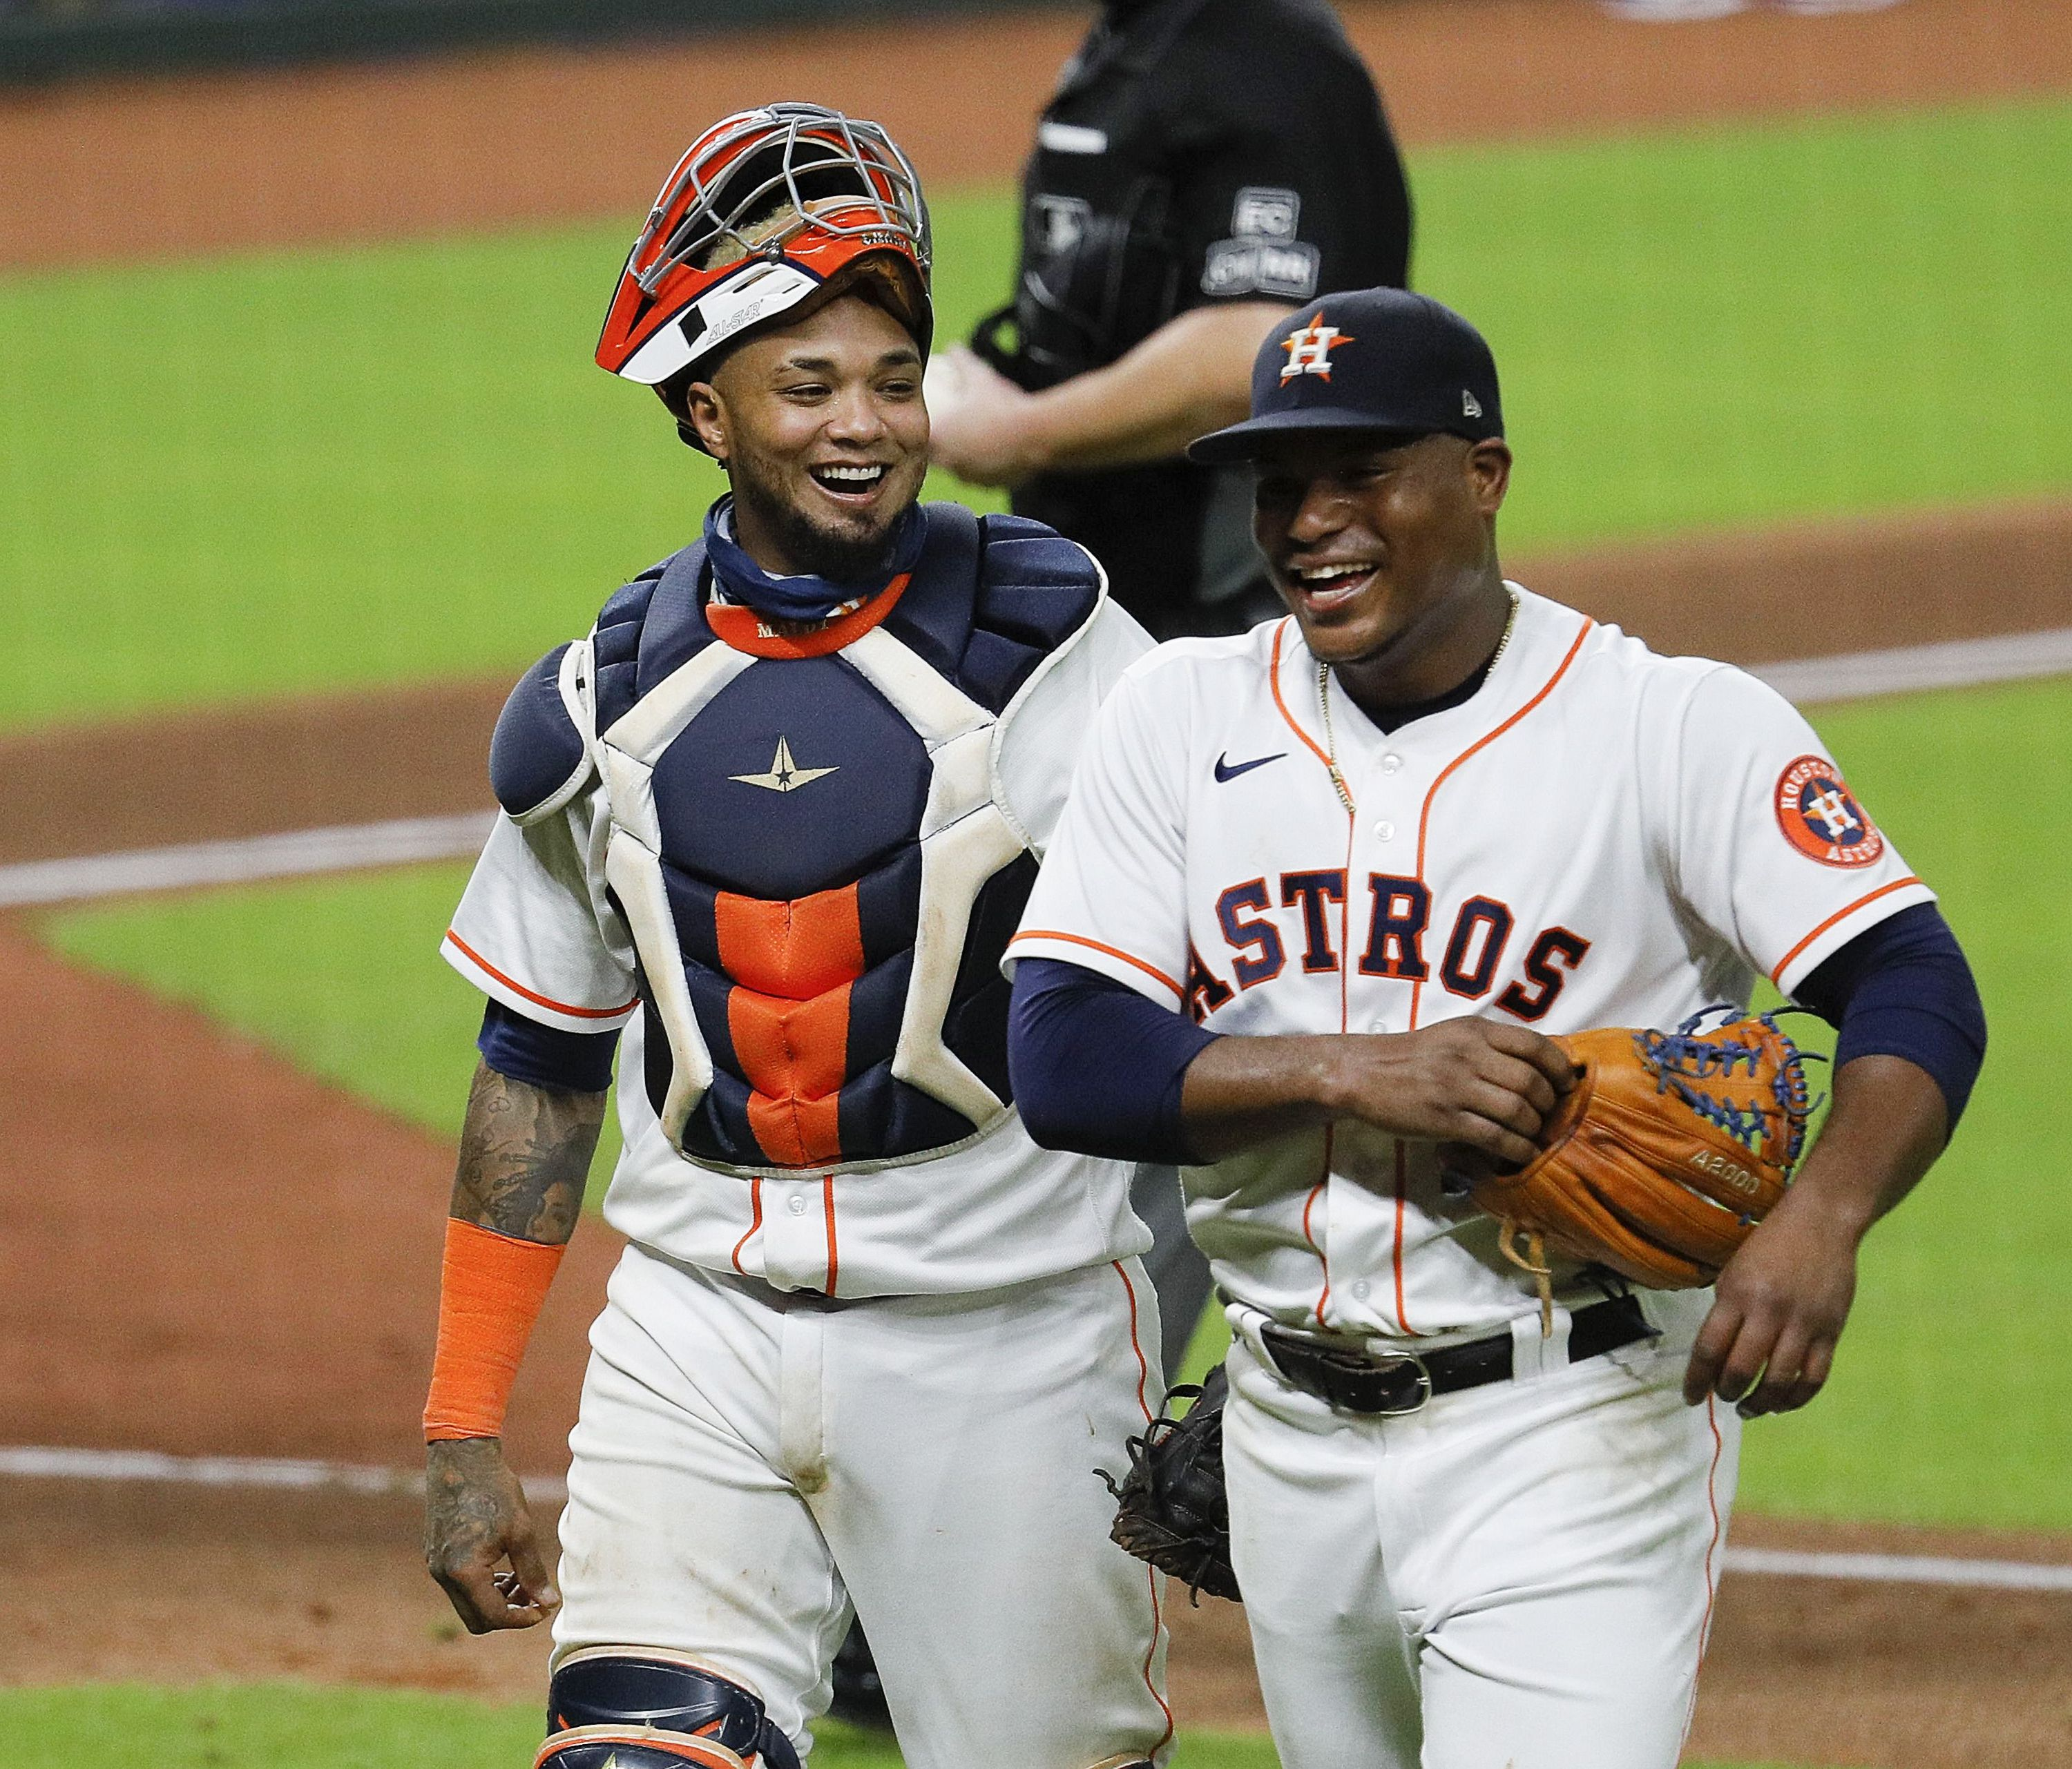 Framber Valdez #59 of the Houston Astros and Martin Maldonado #15 laugh after a ground ball was back up the middle and almost hit Valdez in the sixth inning against the Texas Rangers at Minute Maid Park on September 17, 2020 in Houston, Texas.